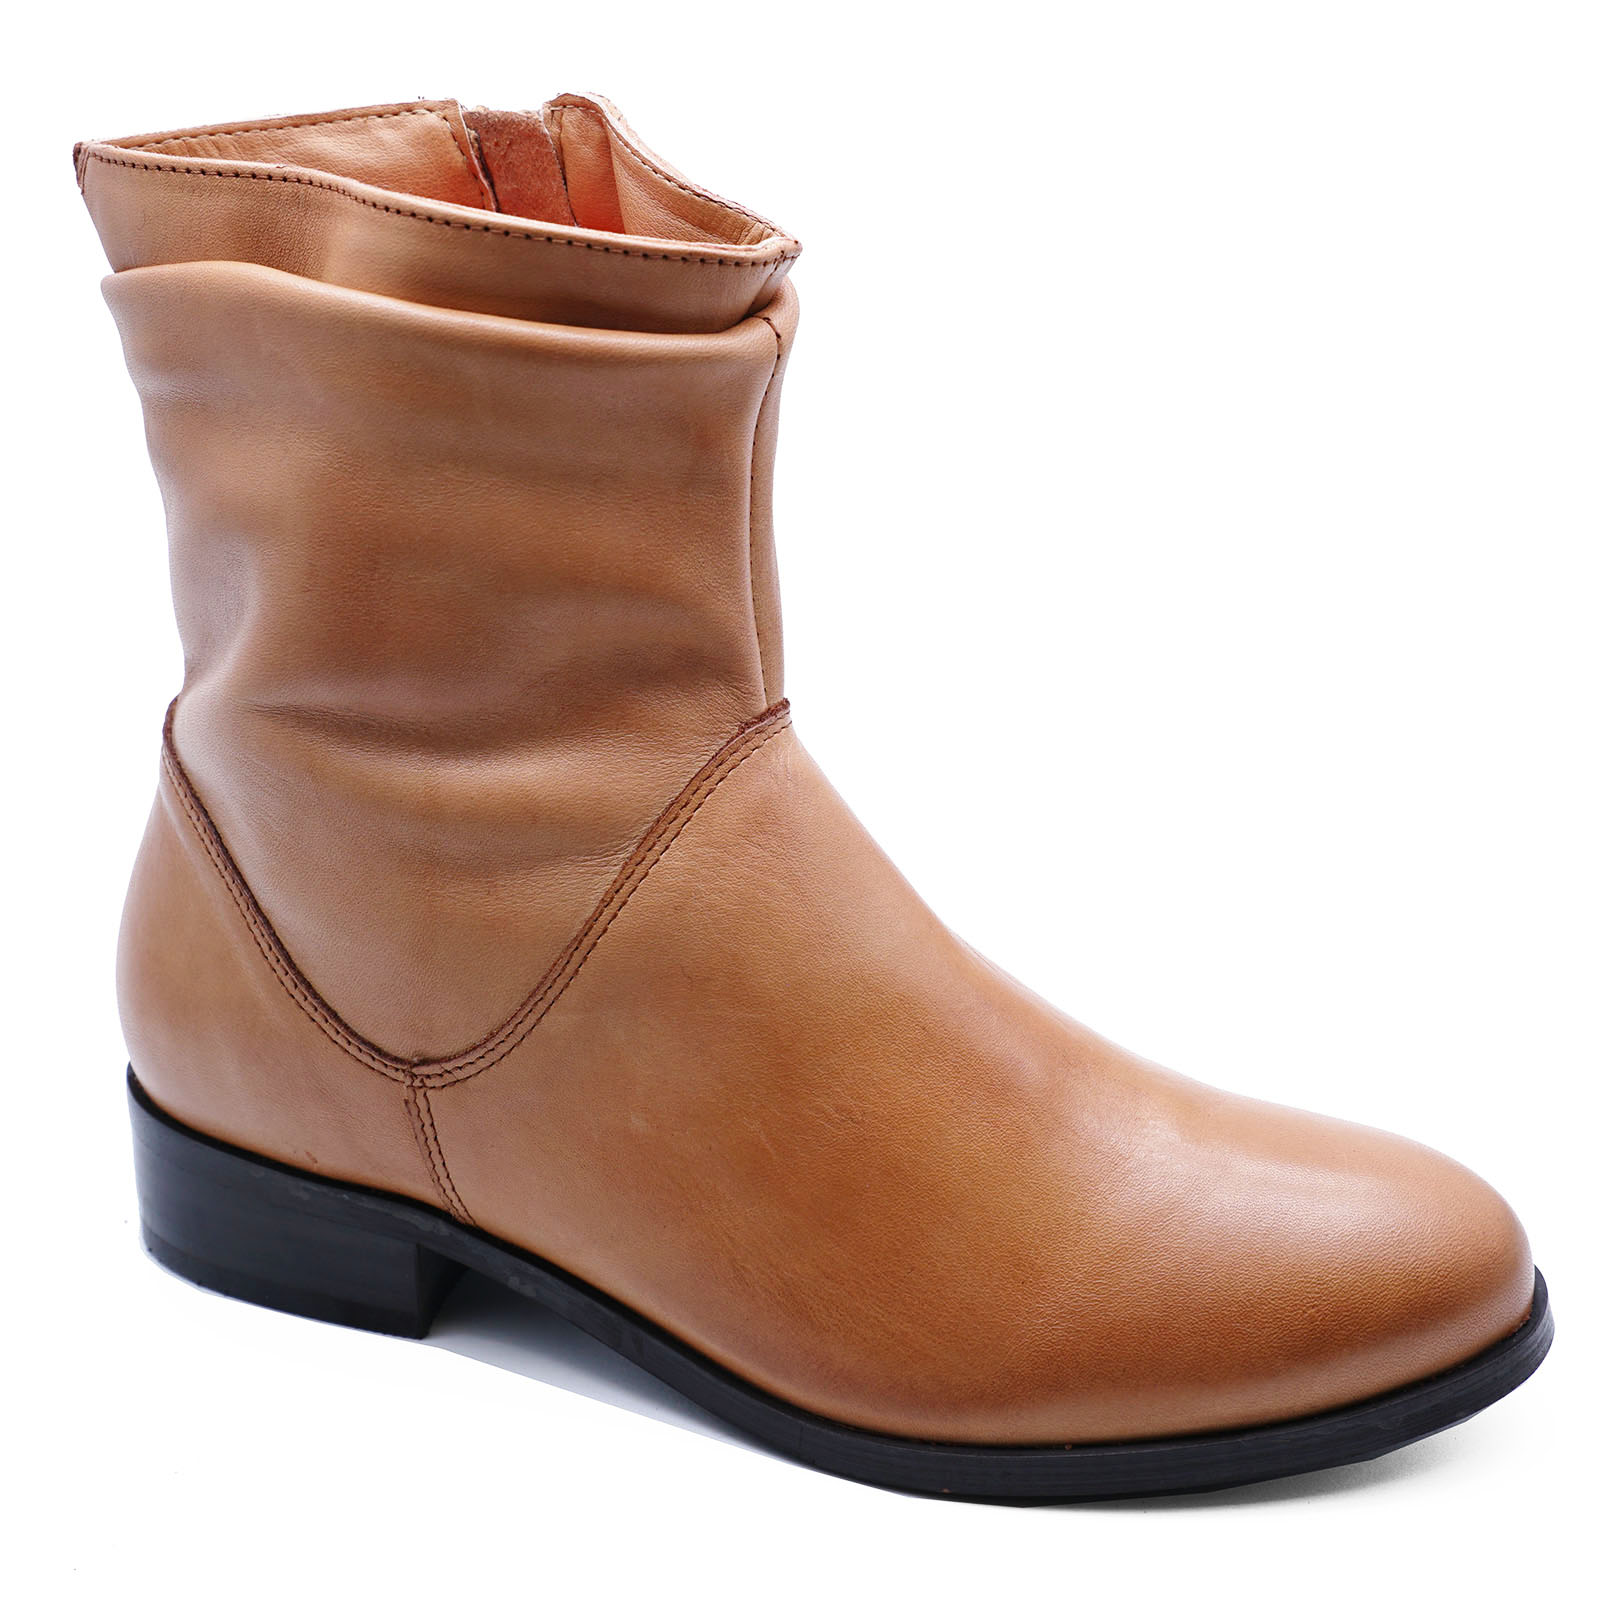 LADIES-FLAT-GENUINE-LEATHER-TAN-ZIP-UP-ANKLE-CALF-BOOTS-COMFY-SHOES-SIZES-2-9 thumbnail 32